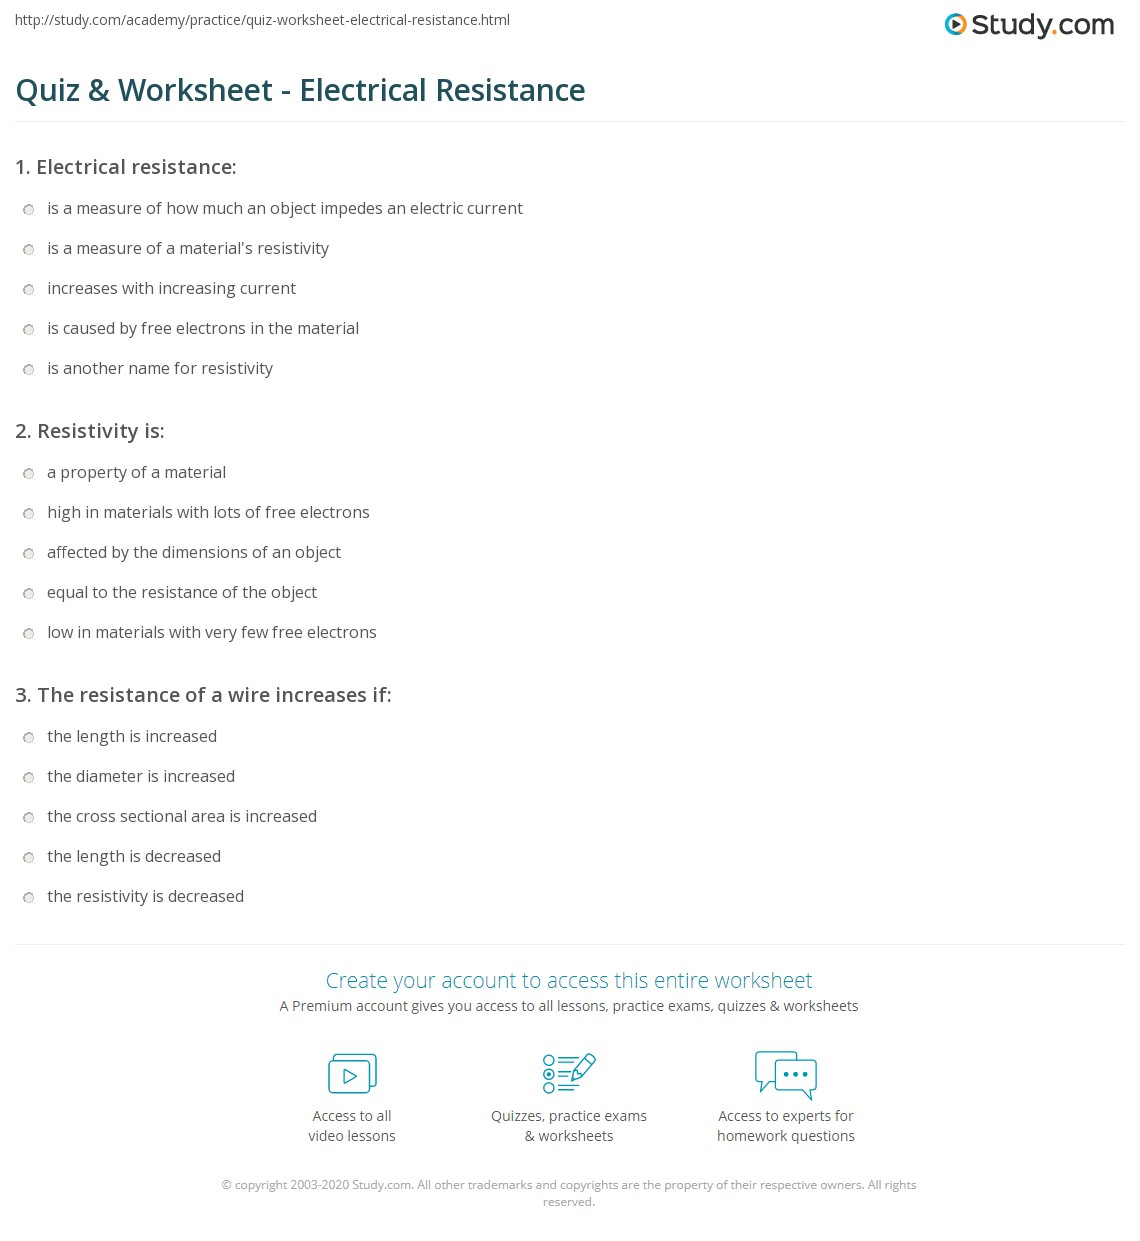 Tremendous Quiz Worksheet Electrical Resistance Study Com Wiring Cloud Hisonuggs Outletorg